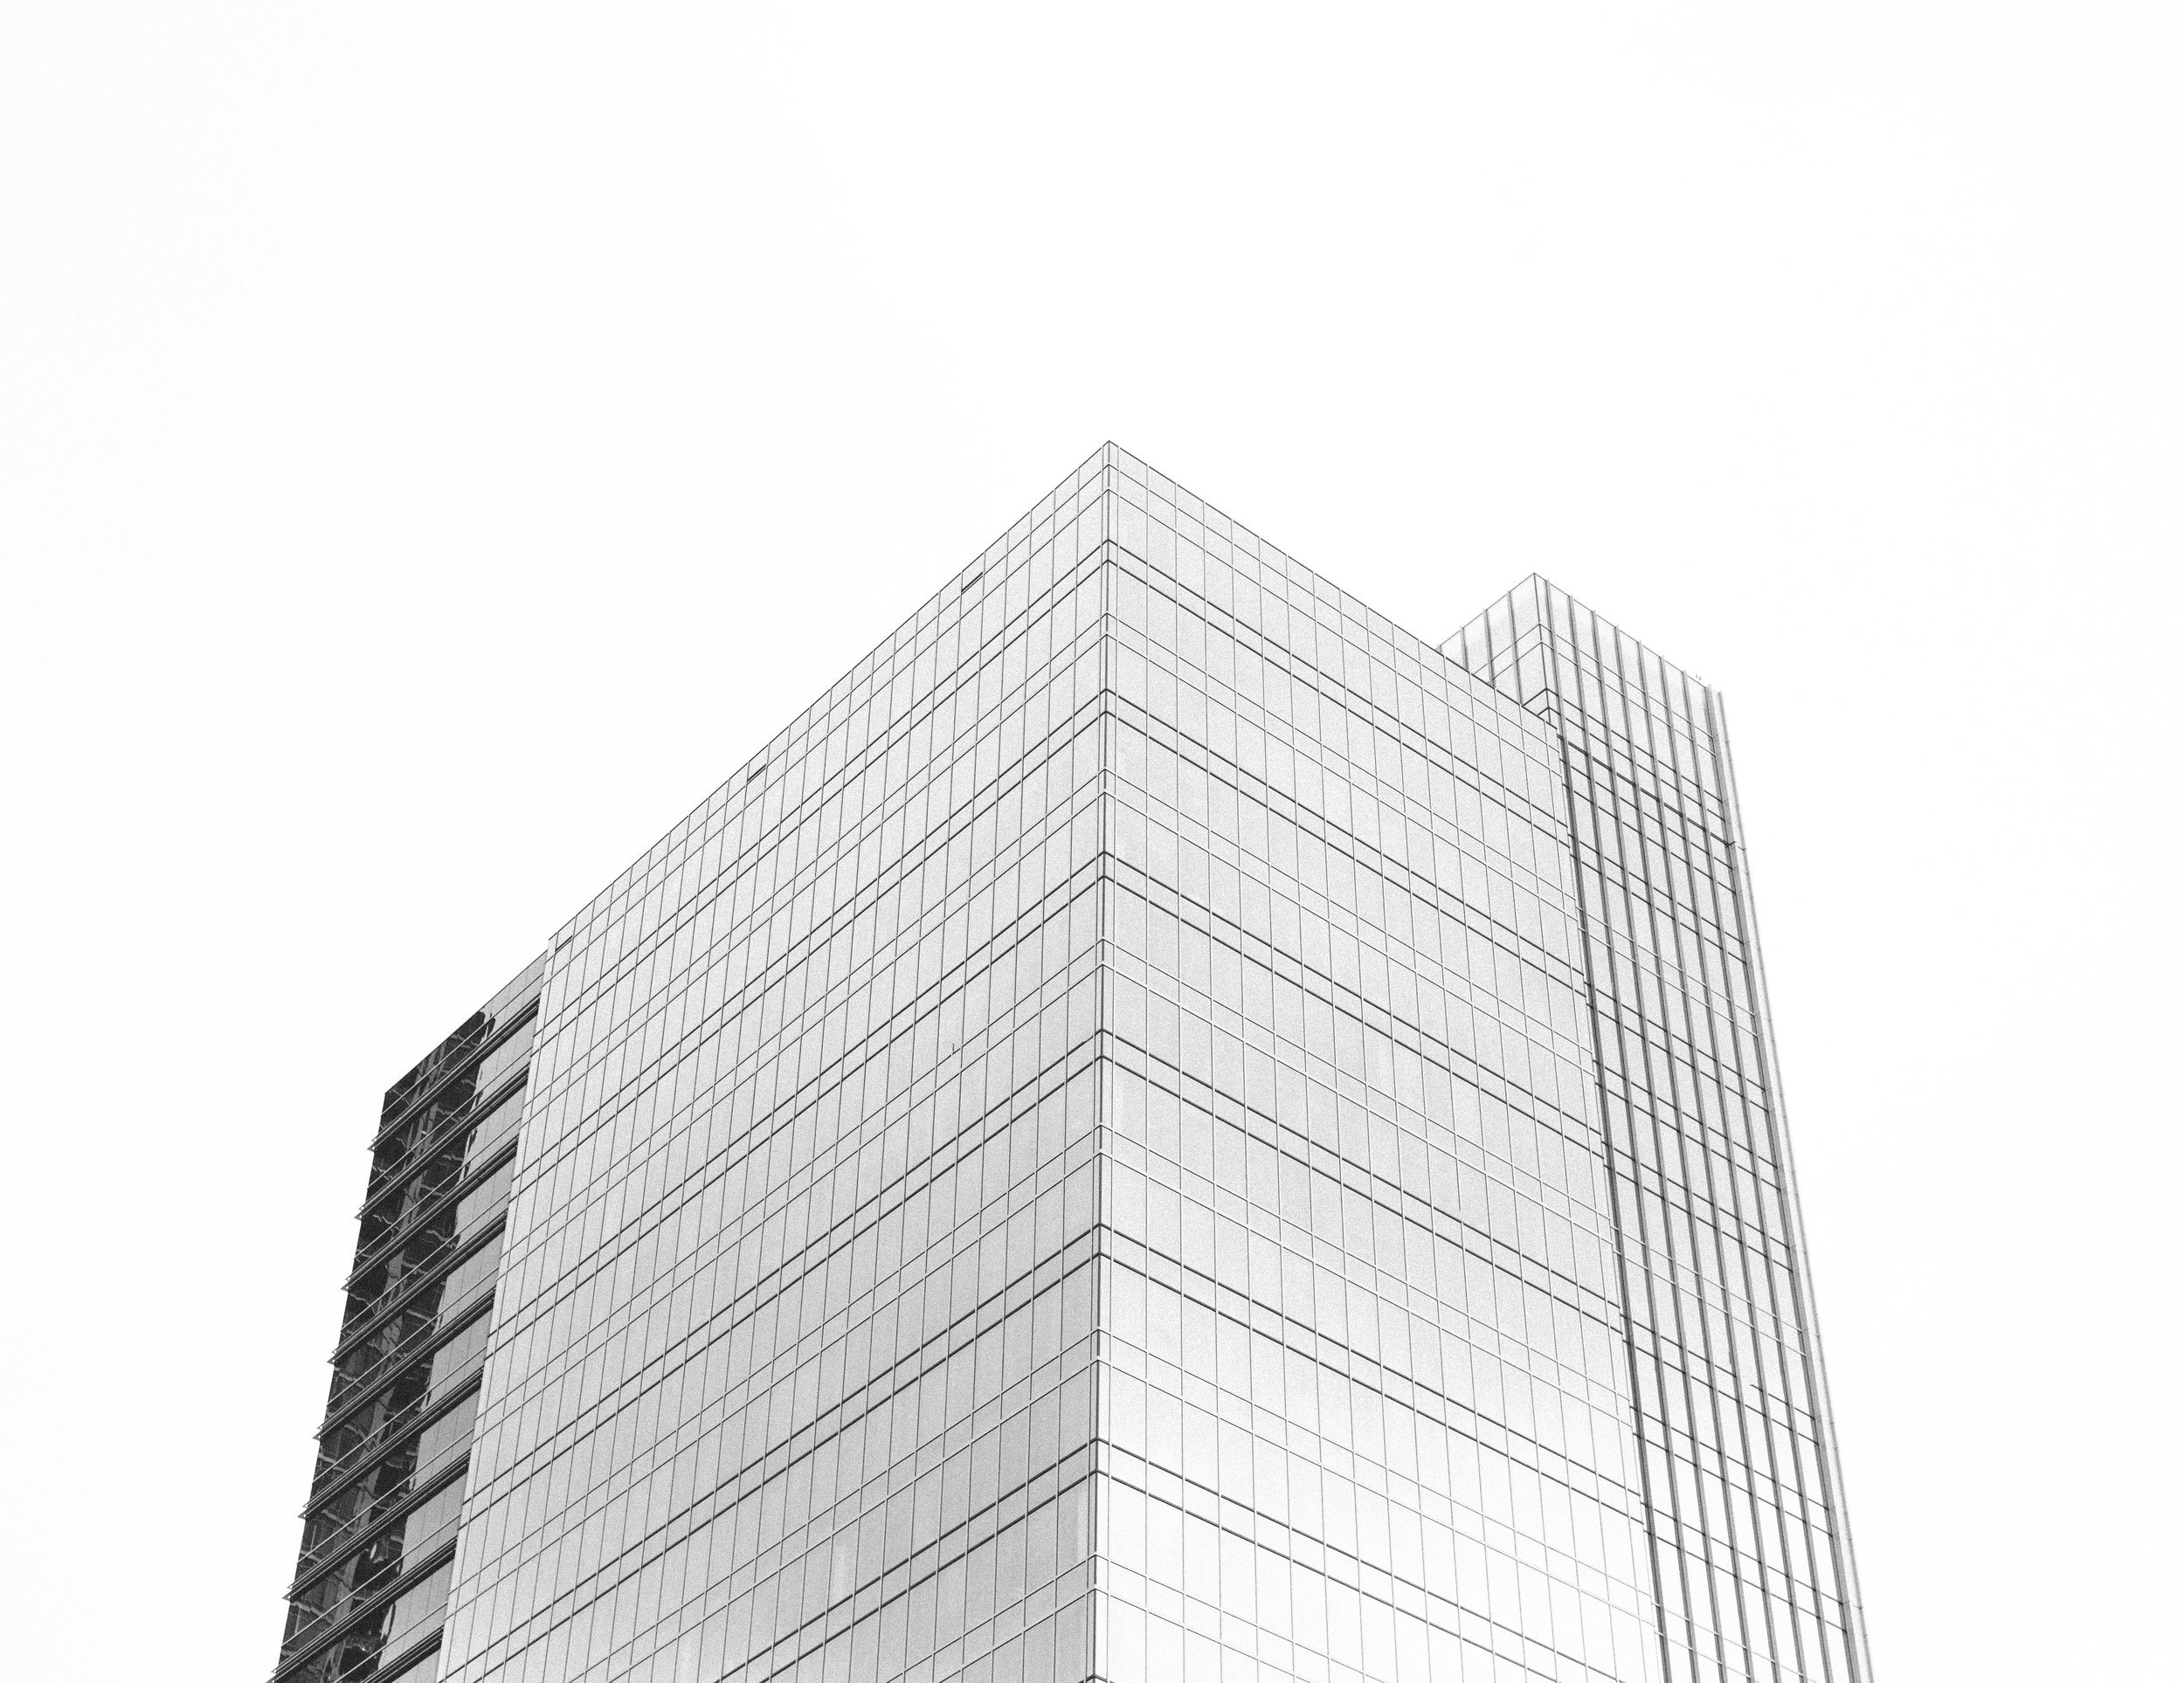 building4 (1 of 1) copy.jpg